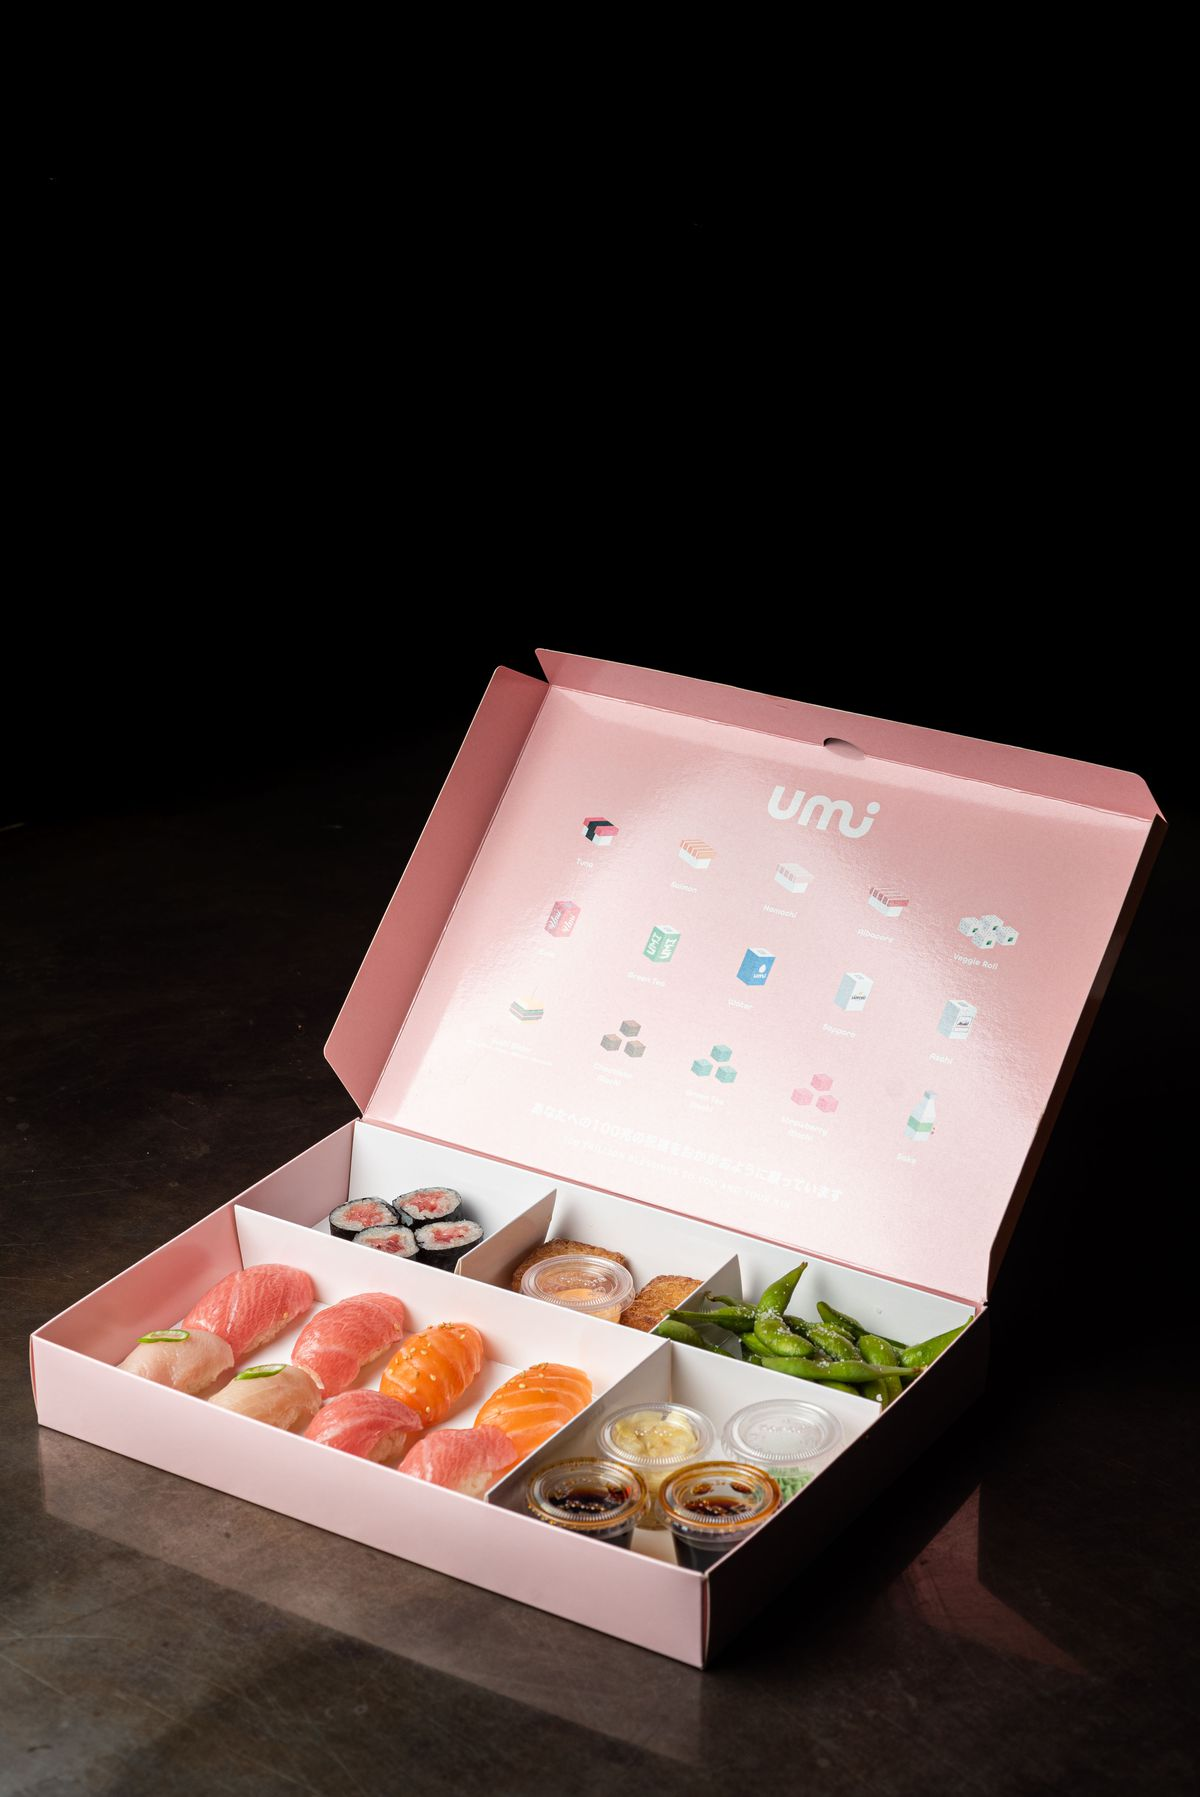 A pink sushi box filled with fish against a black background.